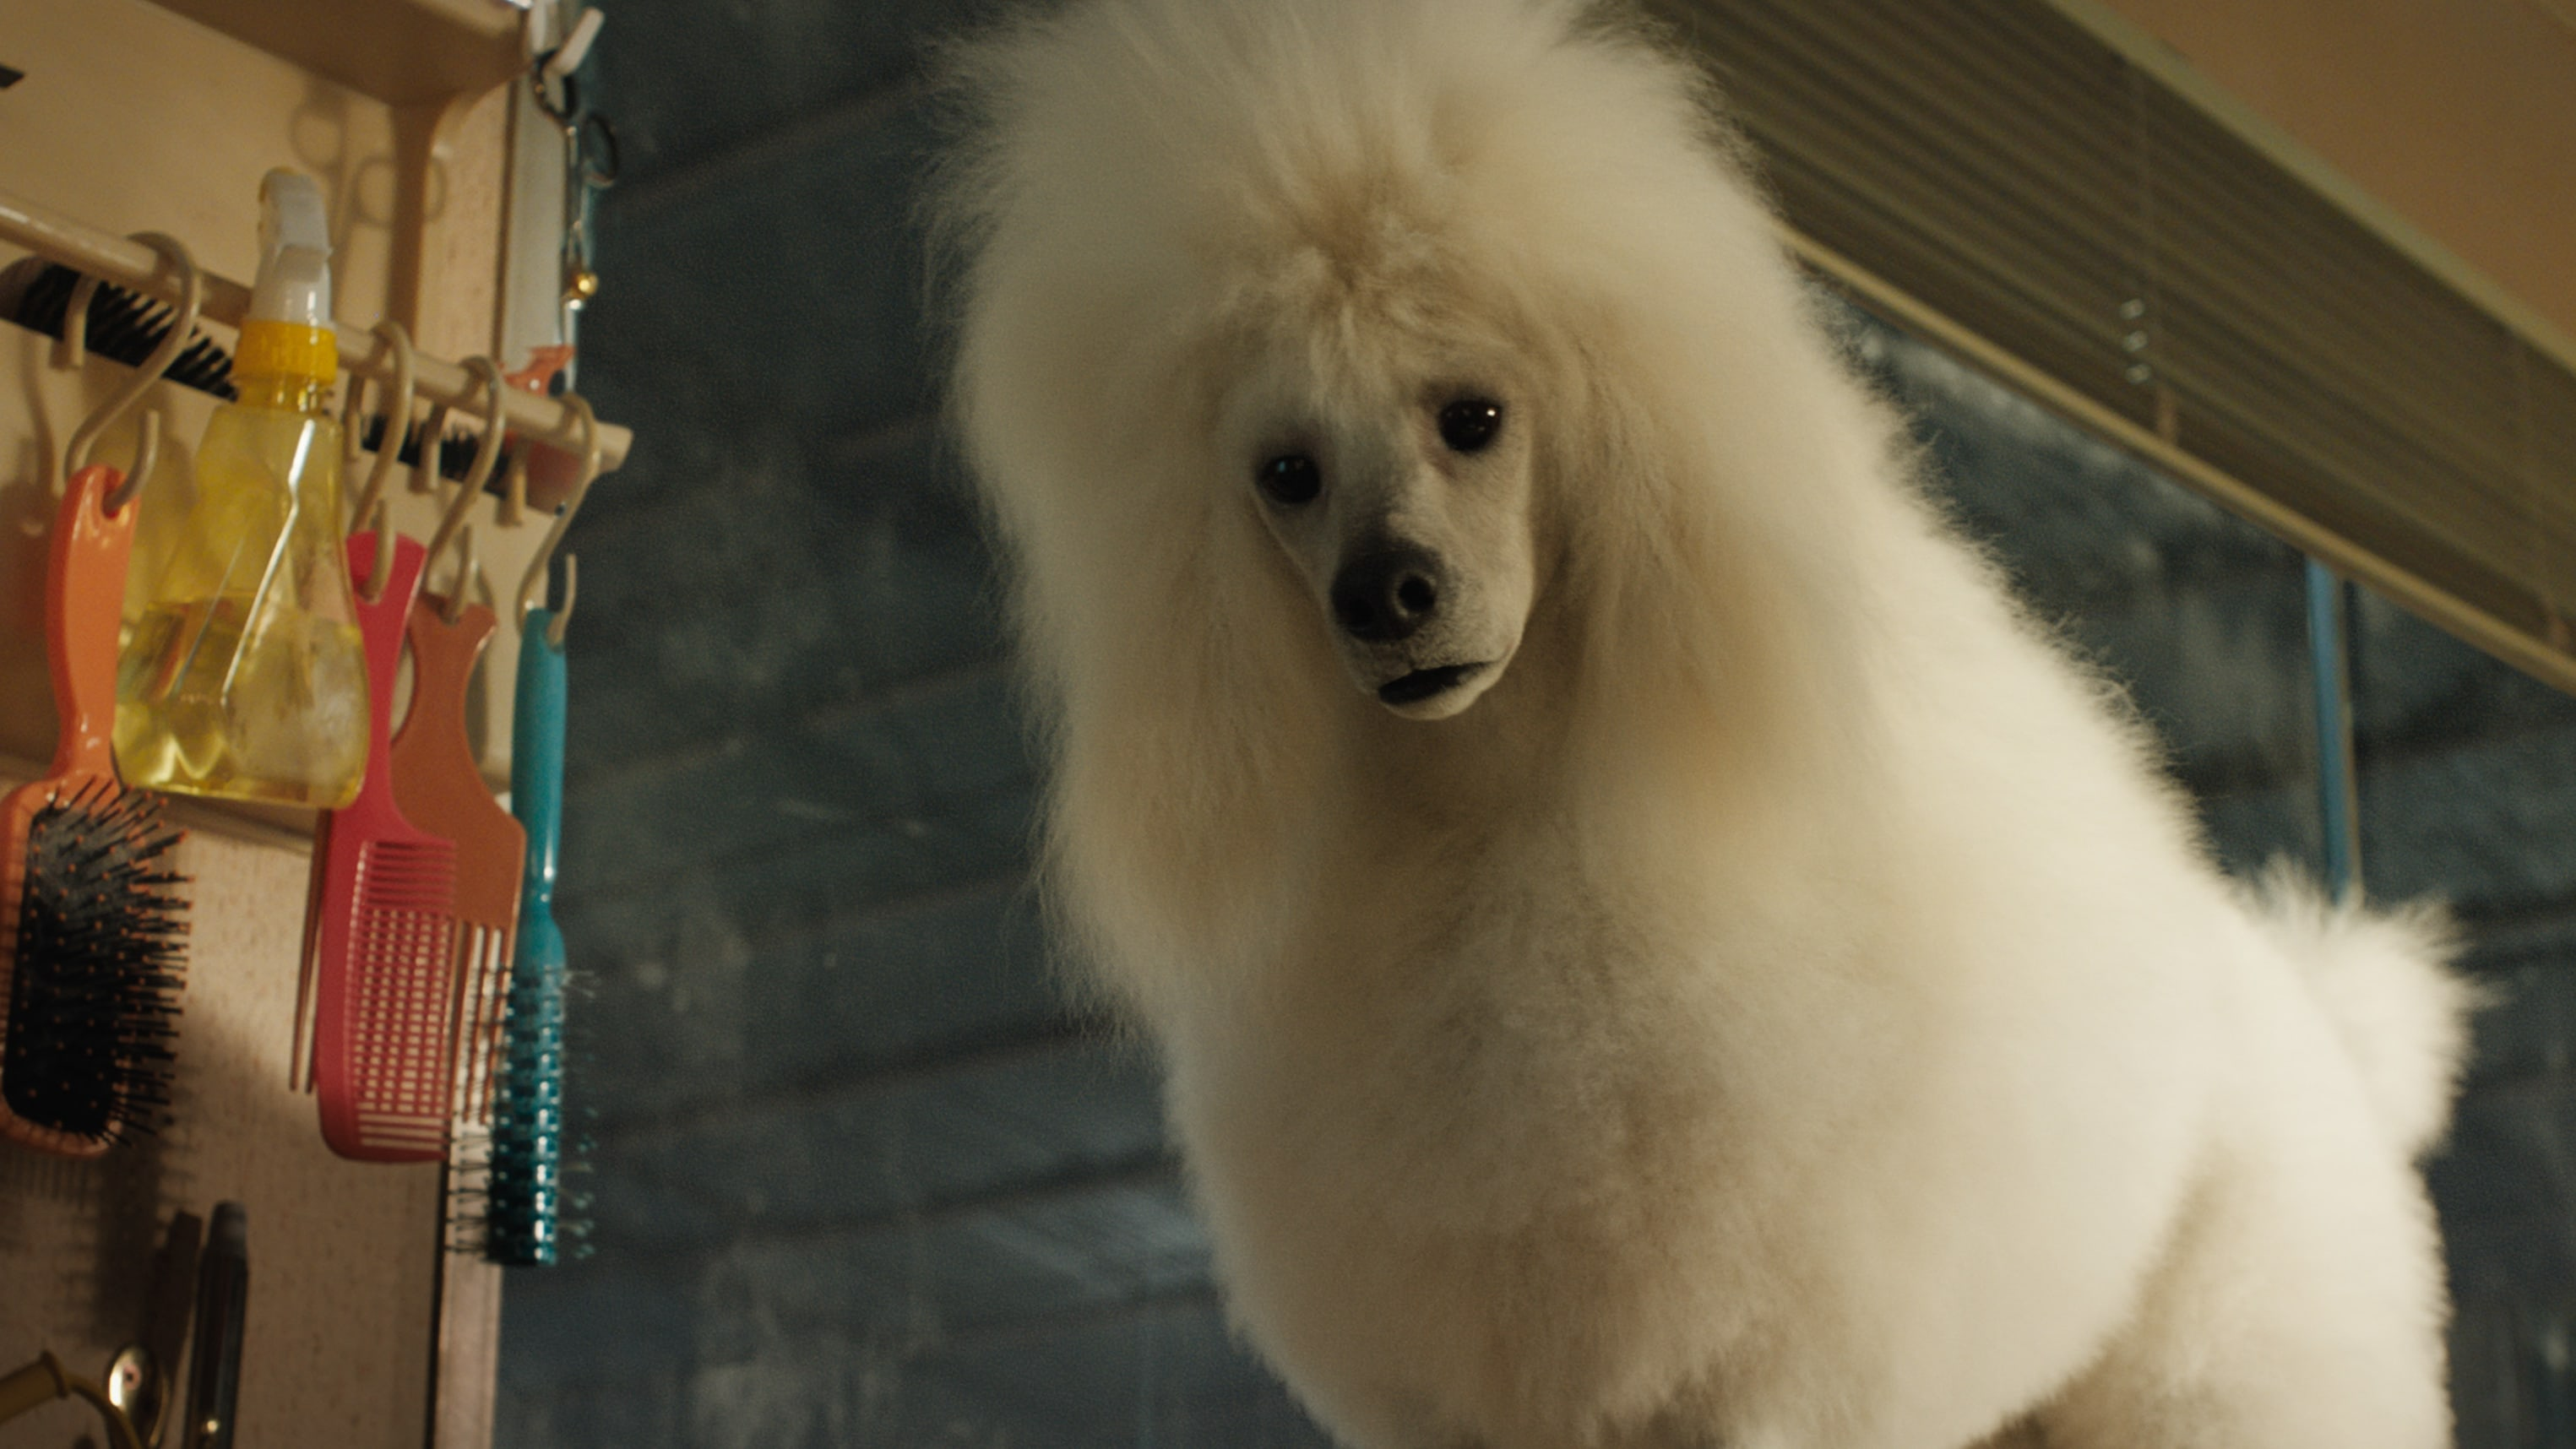 Snickers (voiced by Helen Mirren) in Disney's THE ONE AND ONLY IVAN, based on the award-winning book by Katherine Applegate and directed by Thea Sharrock. Photo courtesy of Disney. © 2020 Disney Enterprises, Inc. All Rights Reserved.